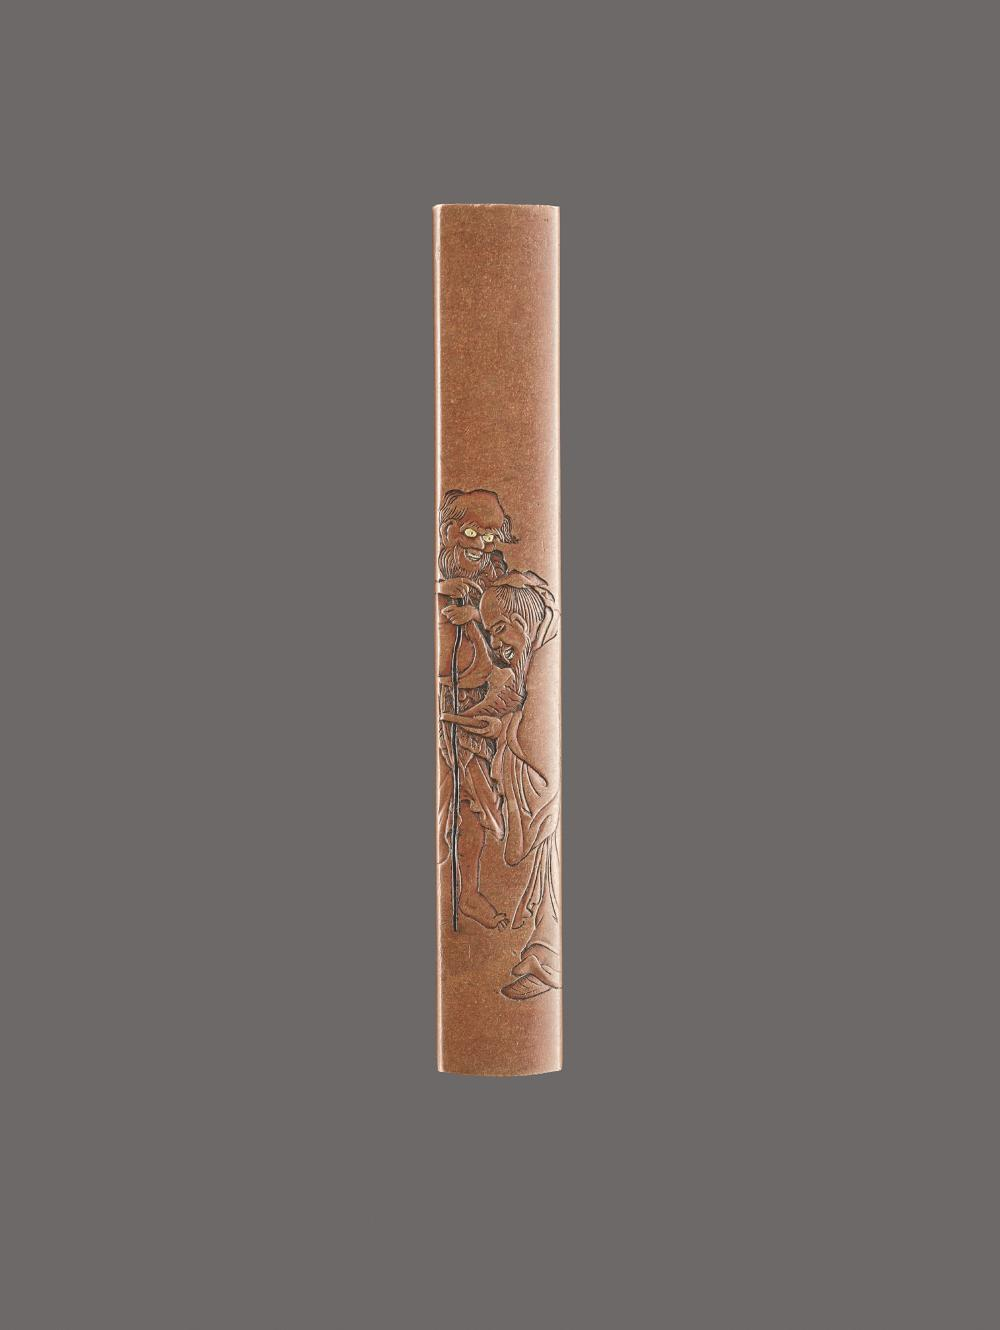 A COPPER KOZUKA HANDLE OF TWO IMMORTALS BY NAOYUKI